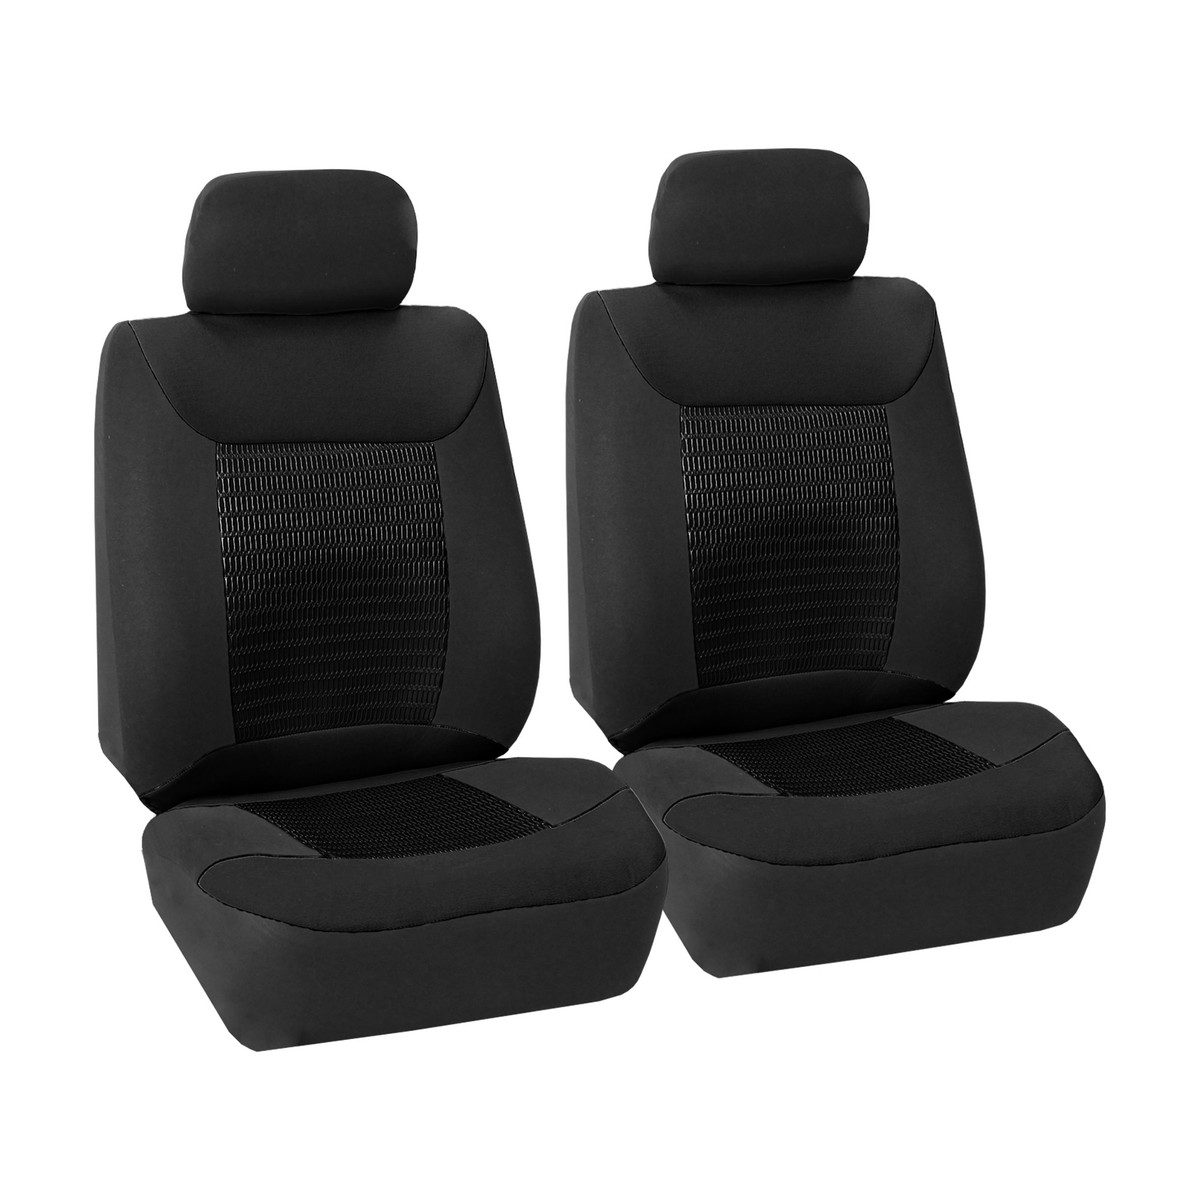 Black Premium 3d Air Mesh Fabric 3 Row Seat Covers Fh Group